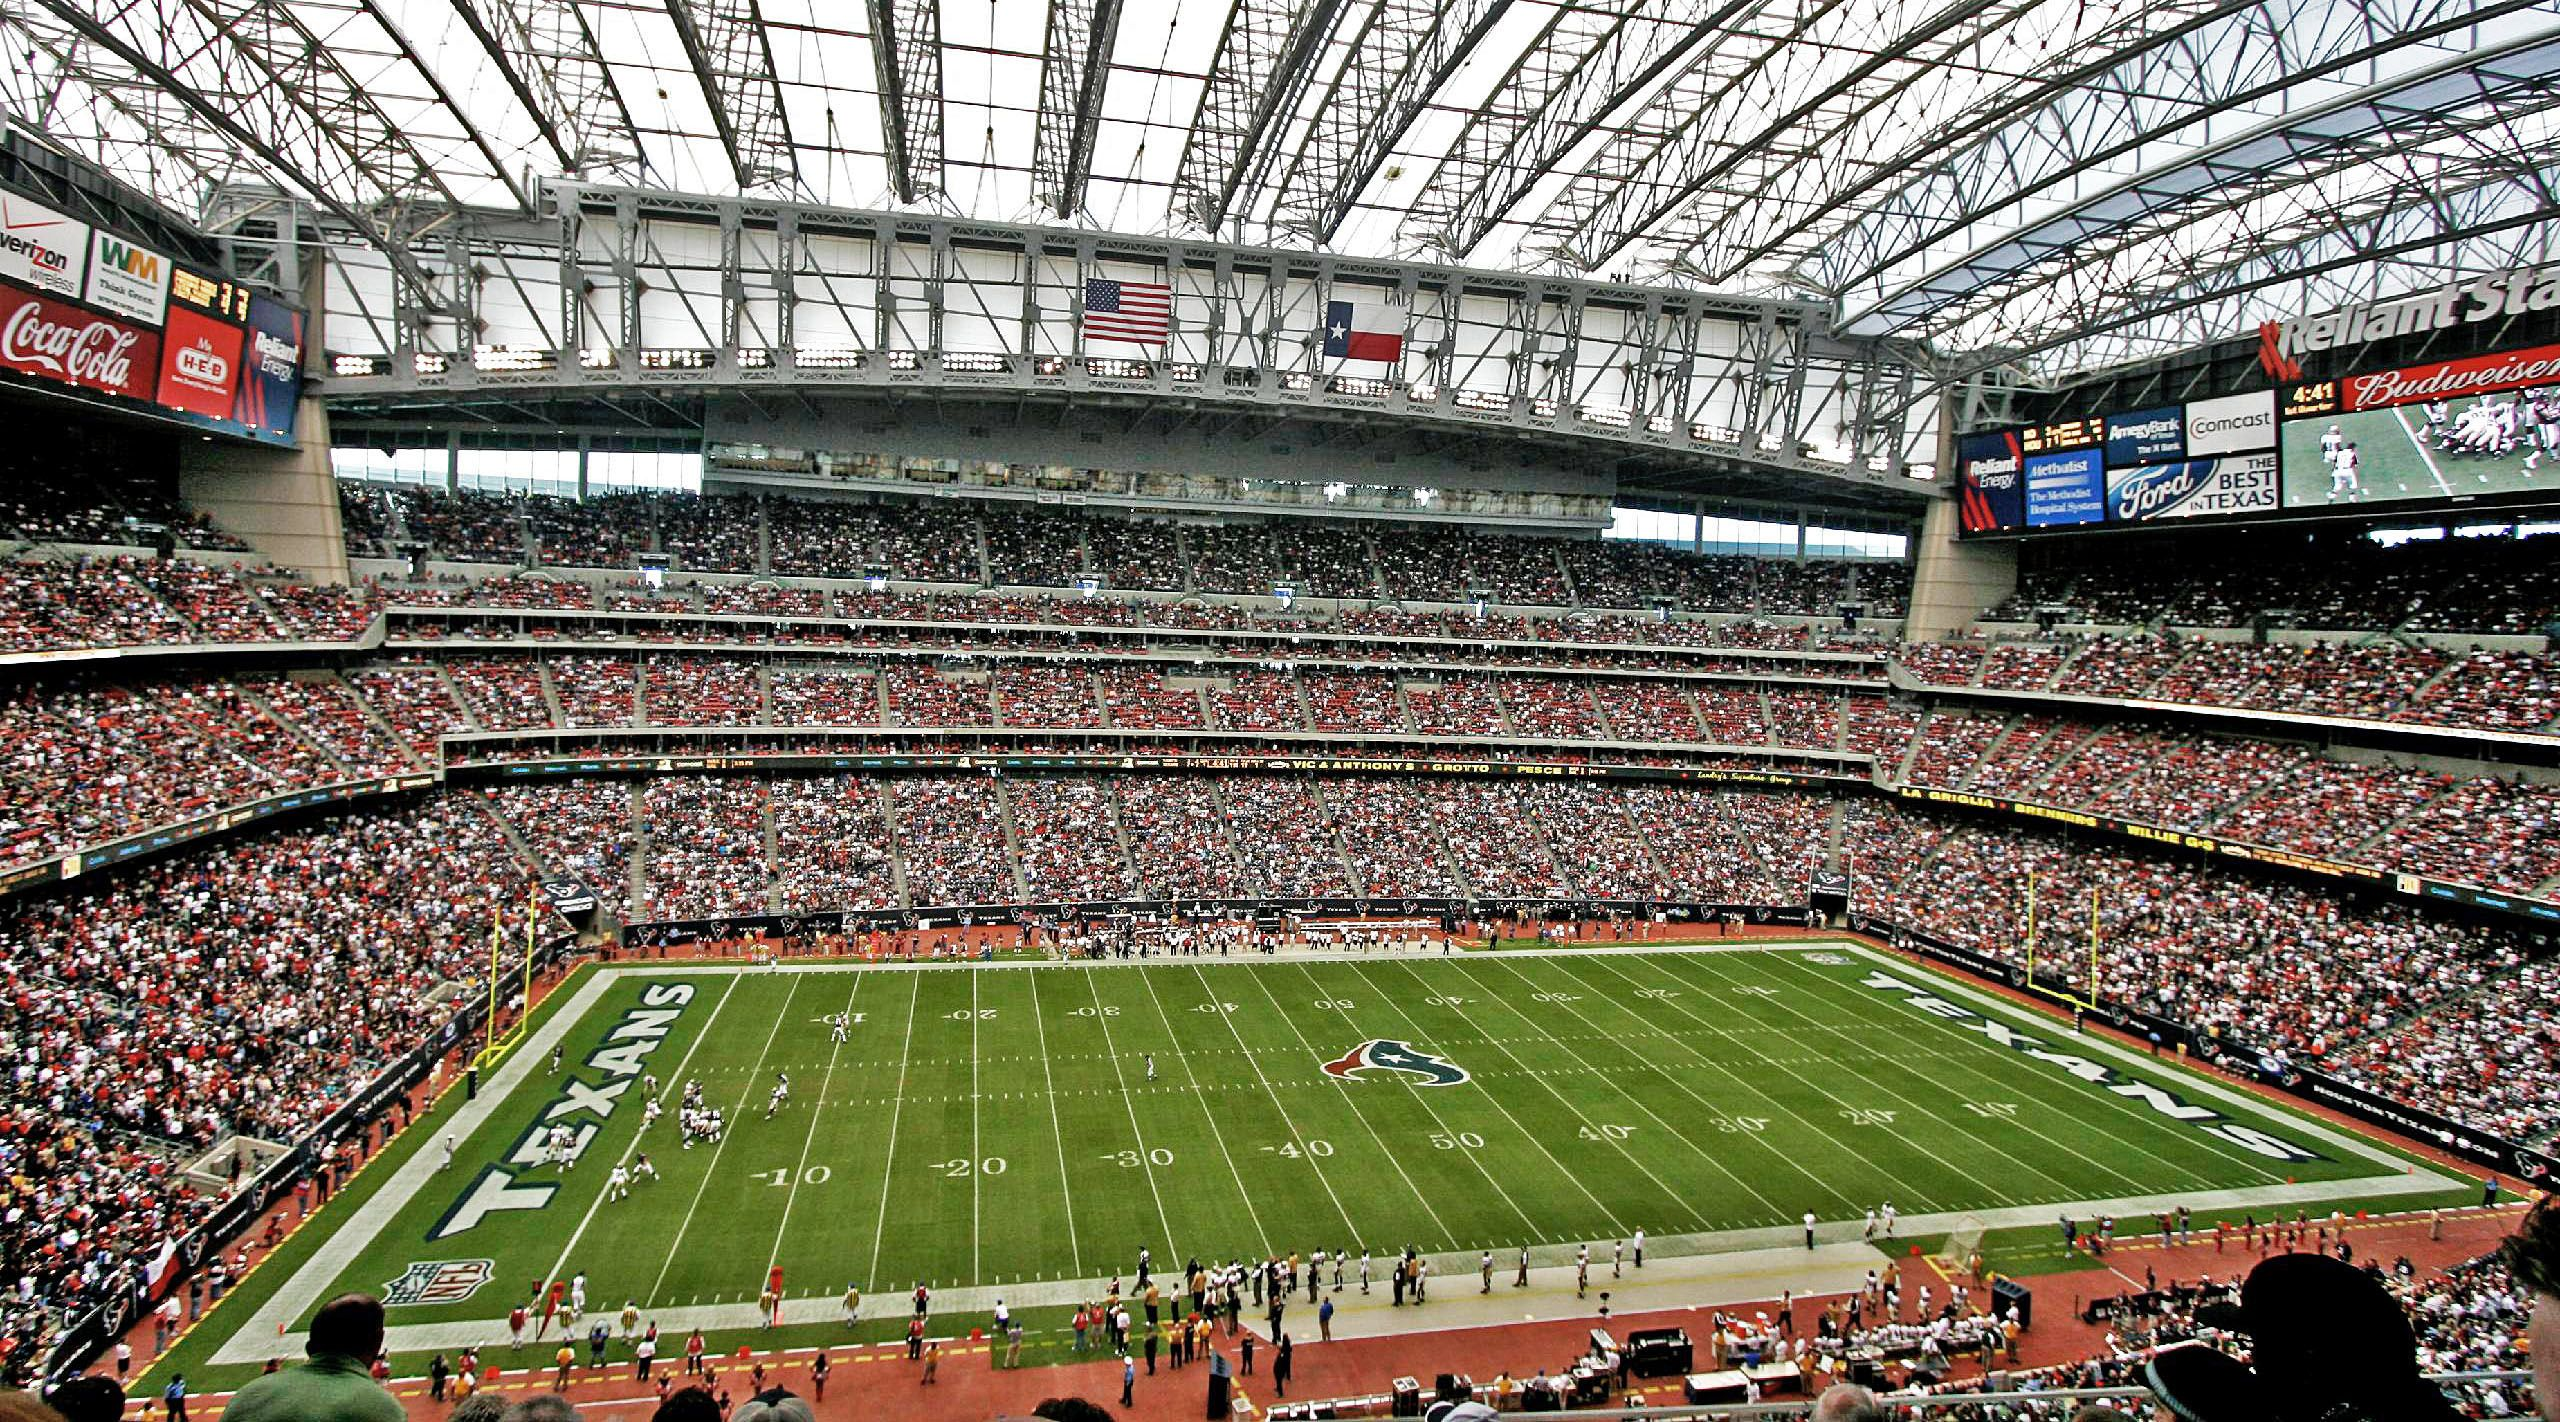 Houston Texans Reliant Stadium Capacity 2002 to Present